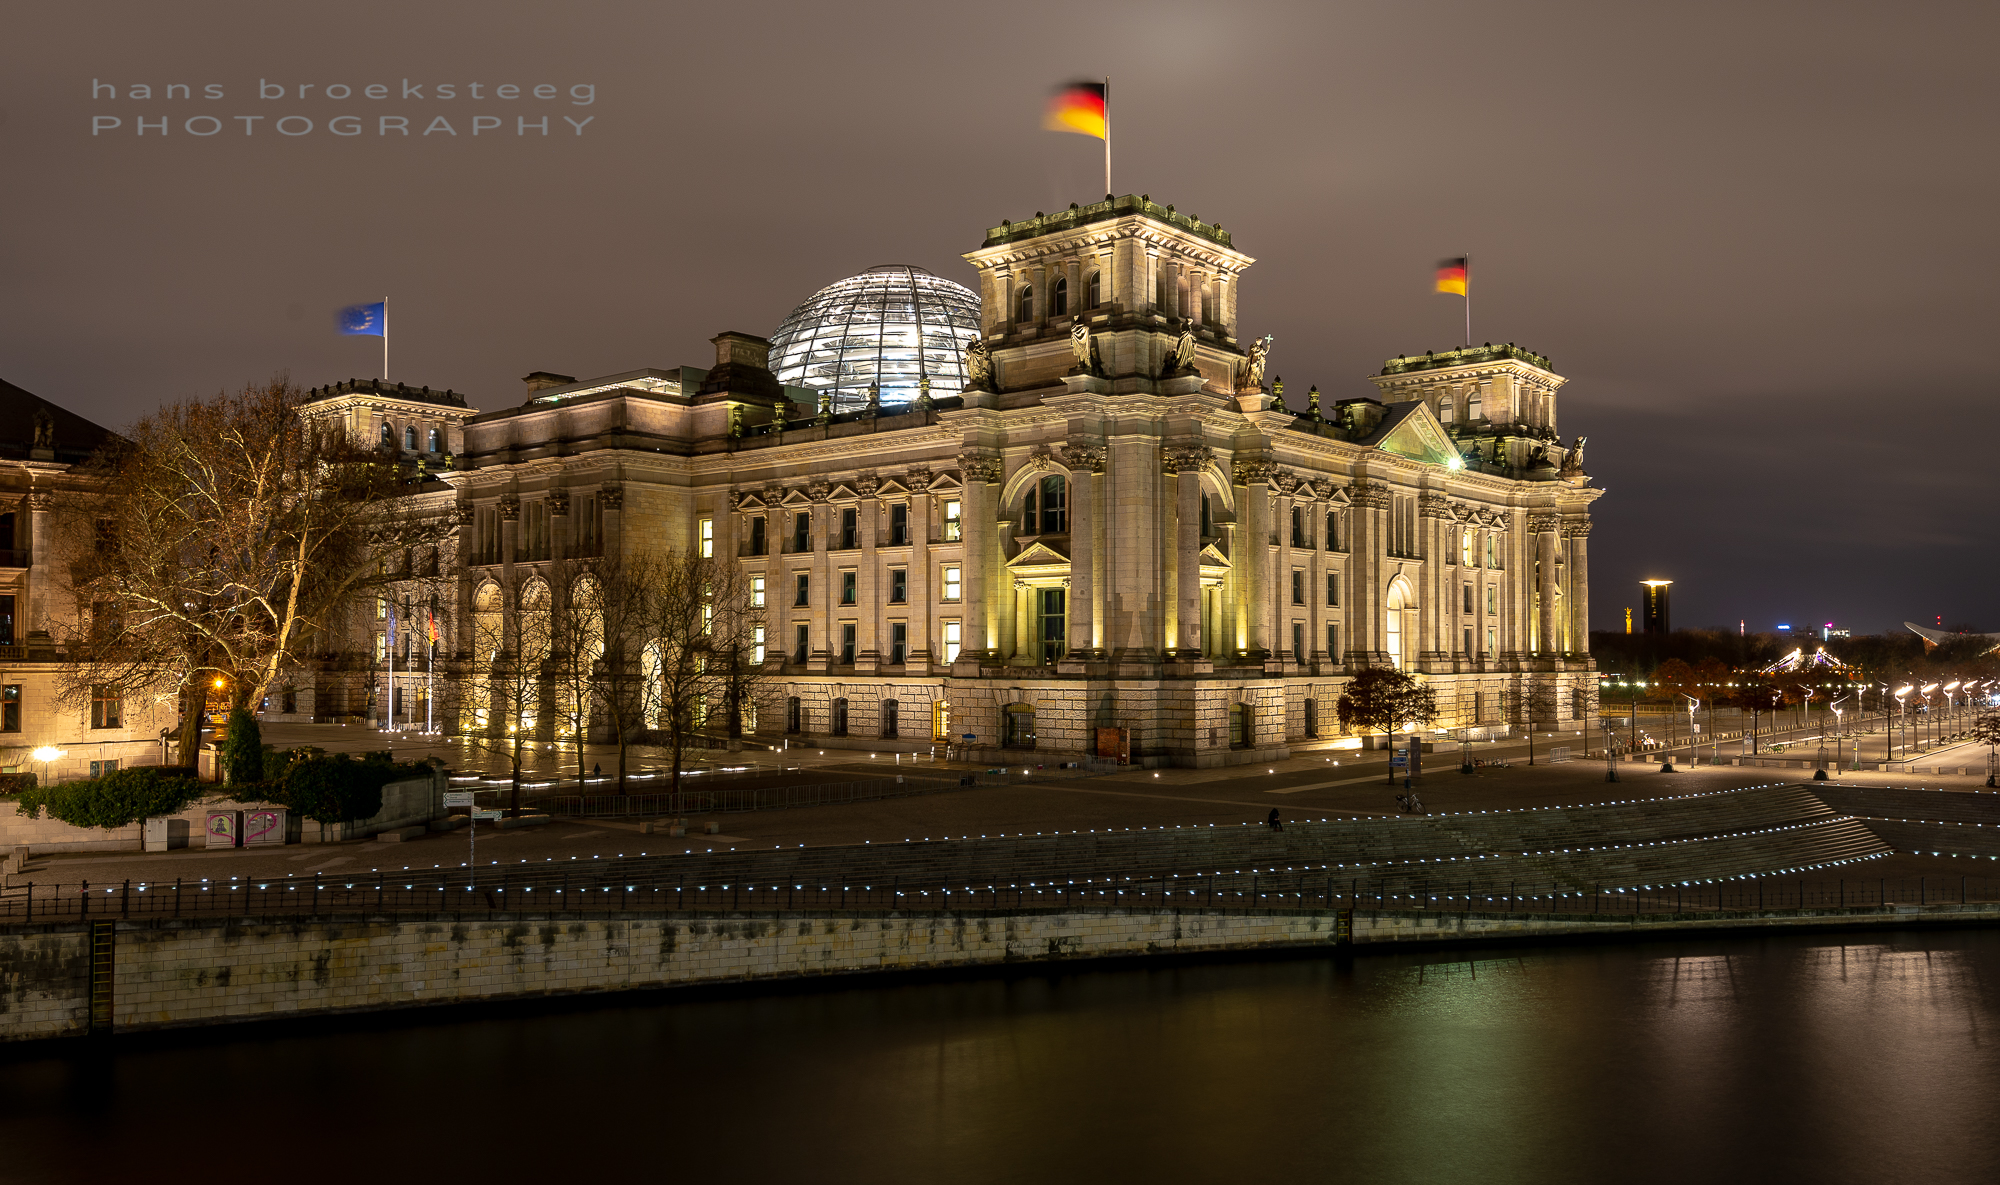 Evening shot of the Reichstag in Berlin, Germany